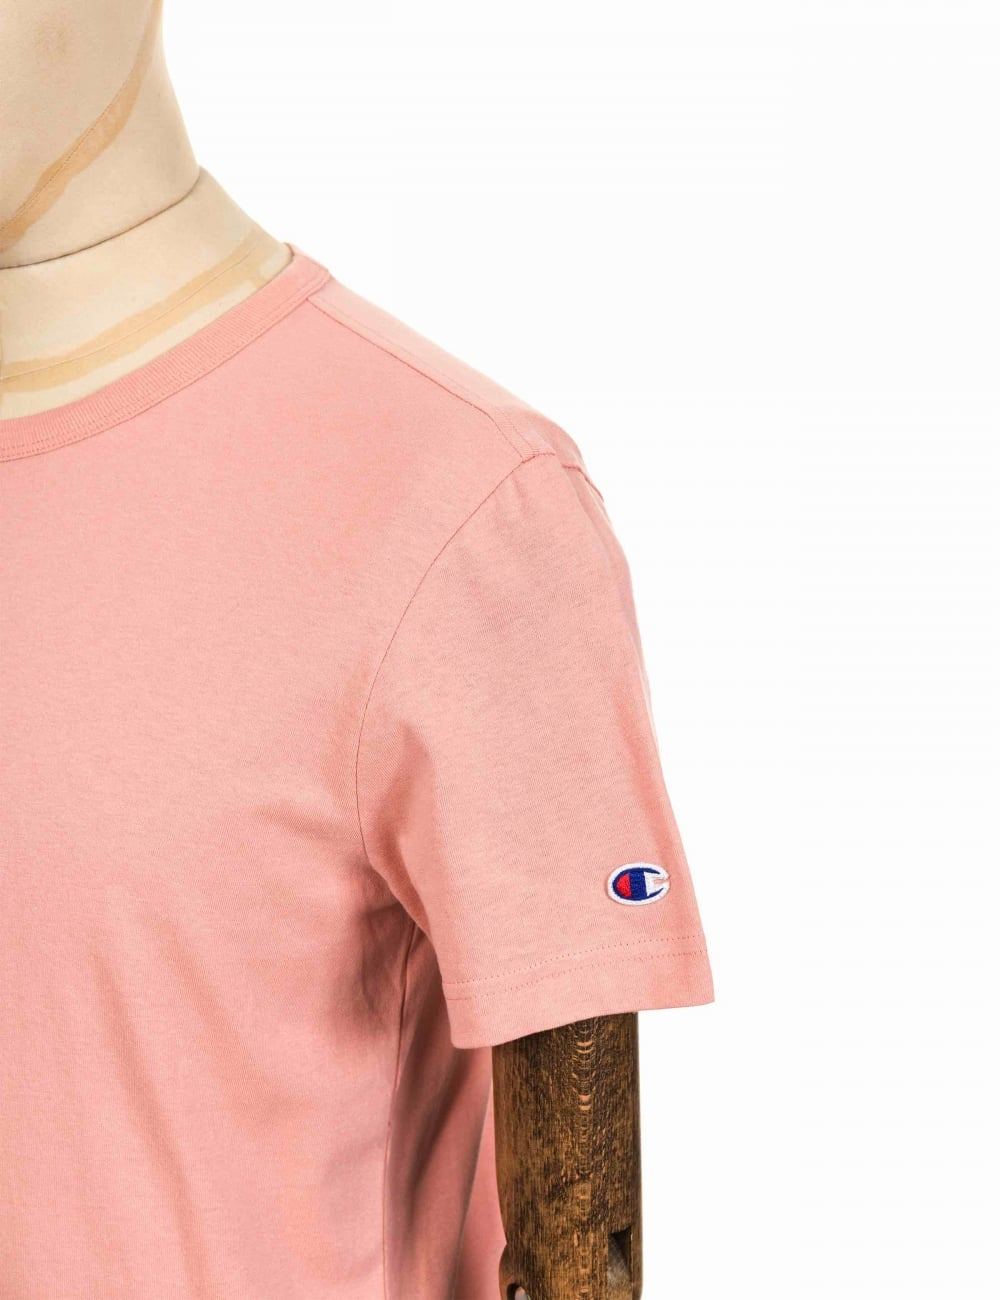 3ecee70b Champion Reverse Weave Crewneck Tee - RTN Pink - Clothing from Fat ...